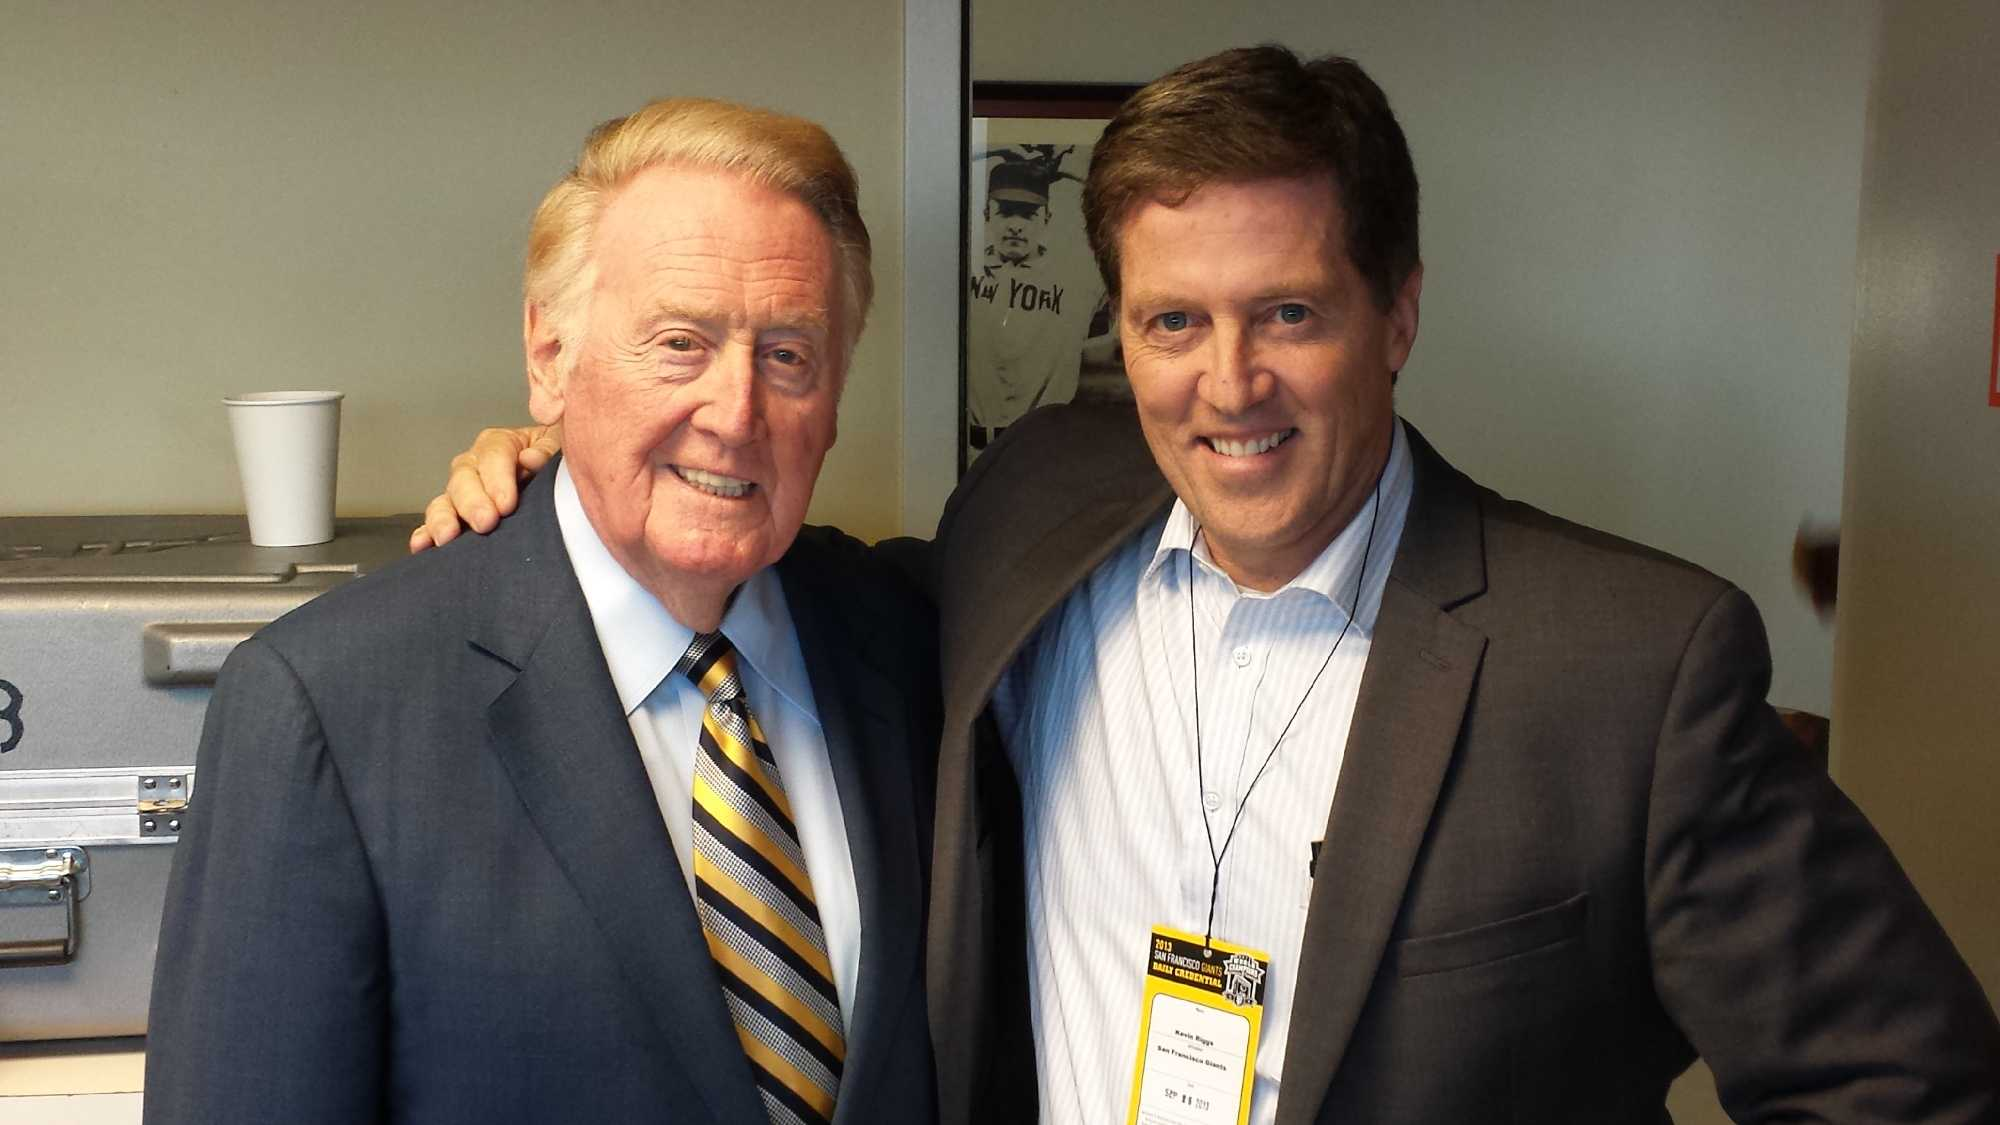 Vin Scully and Kevin Riggs